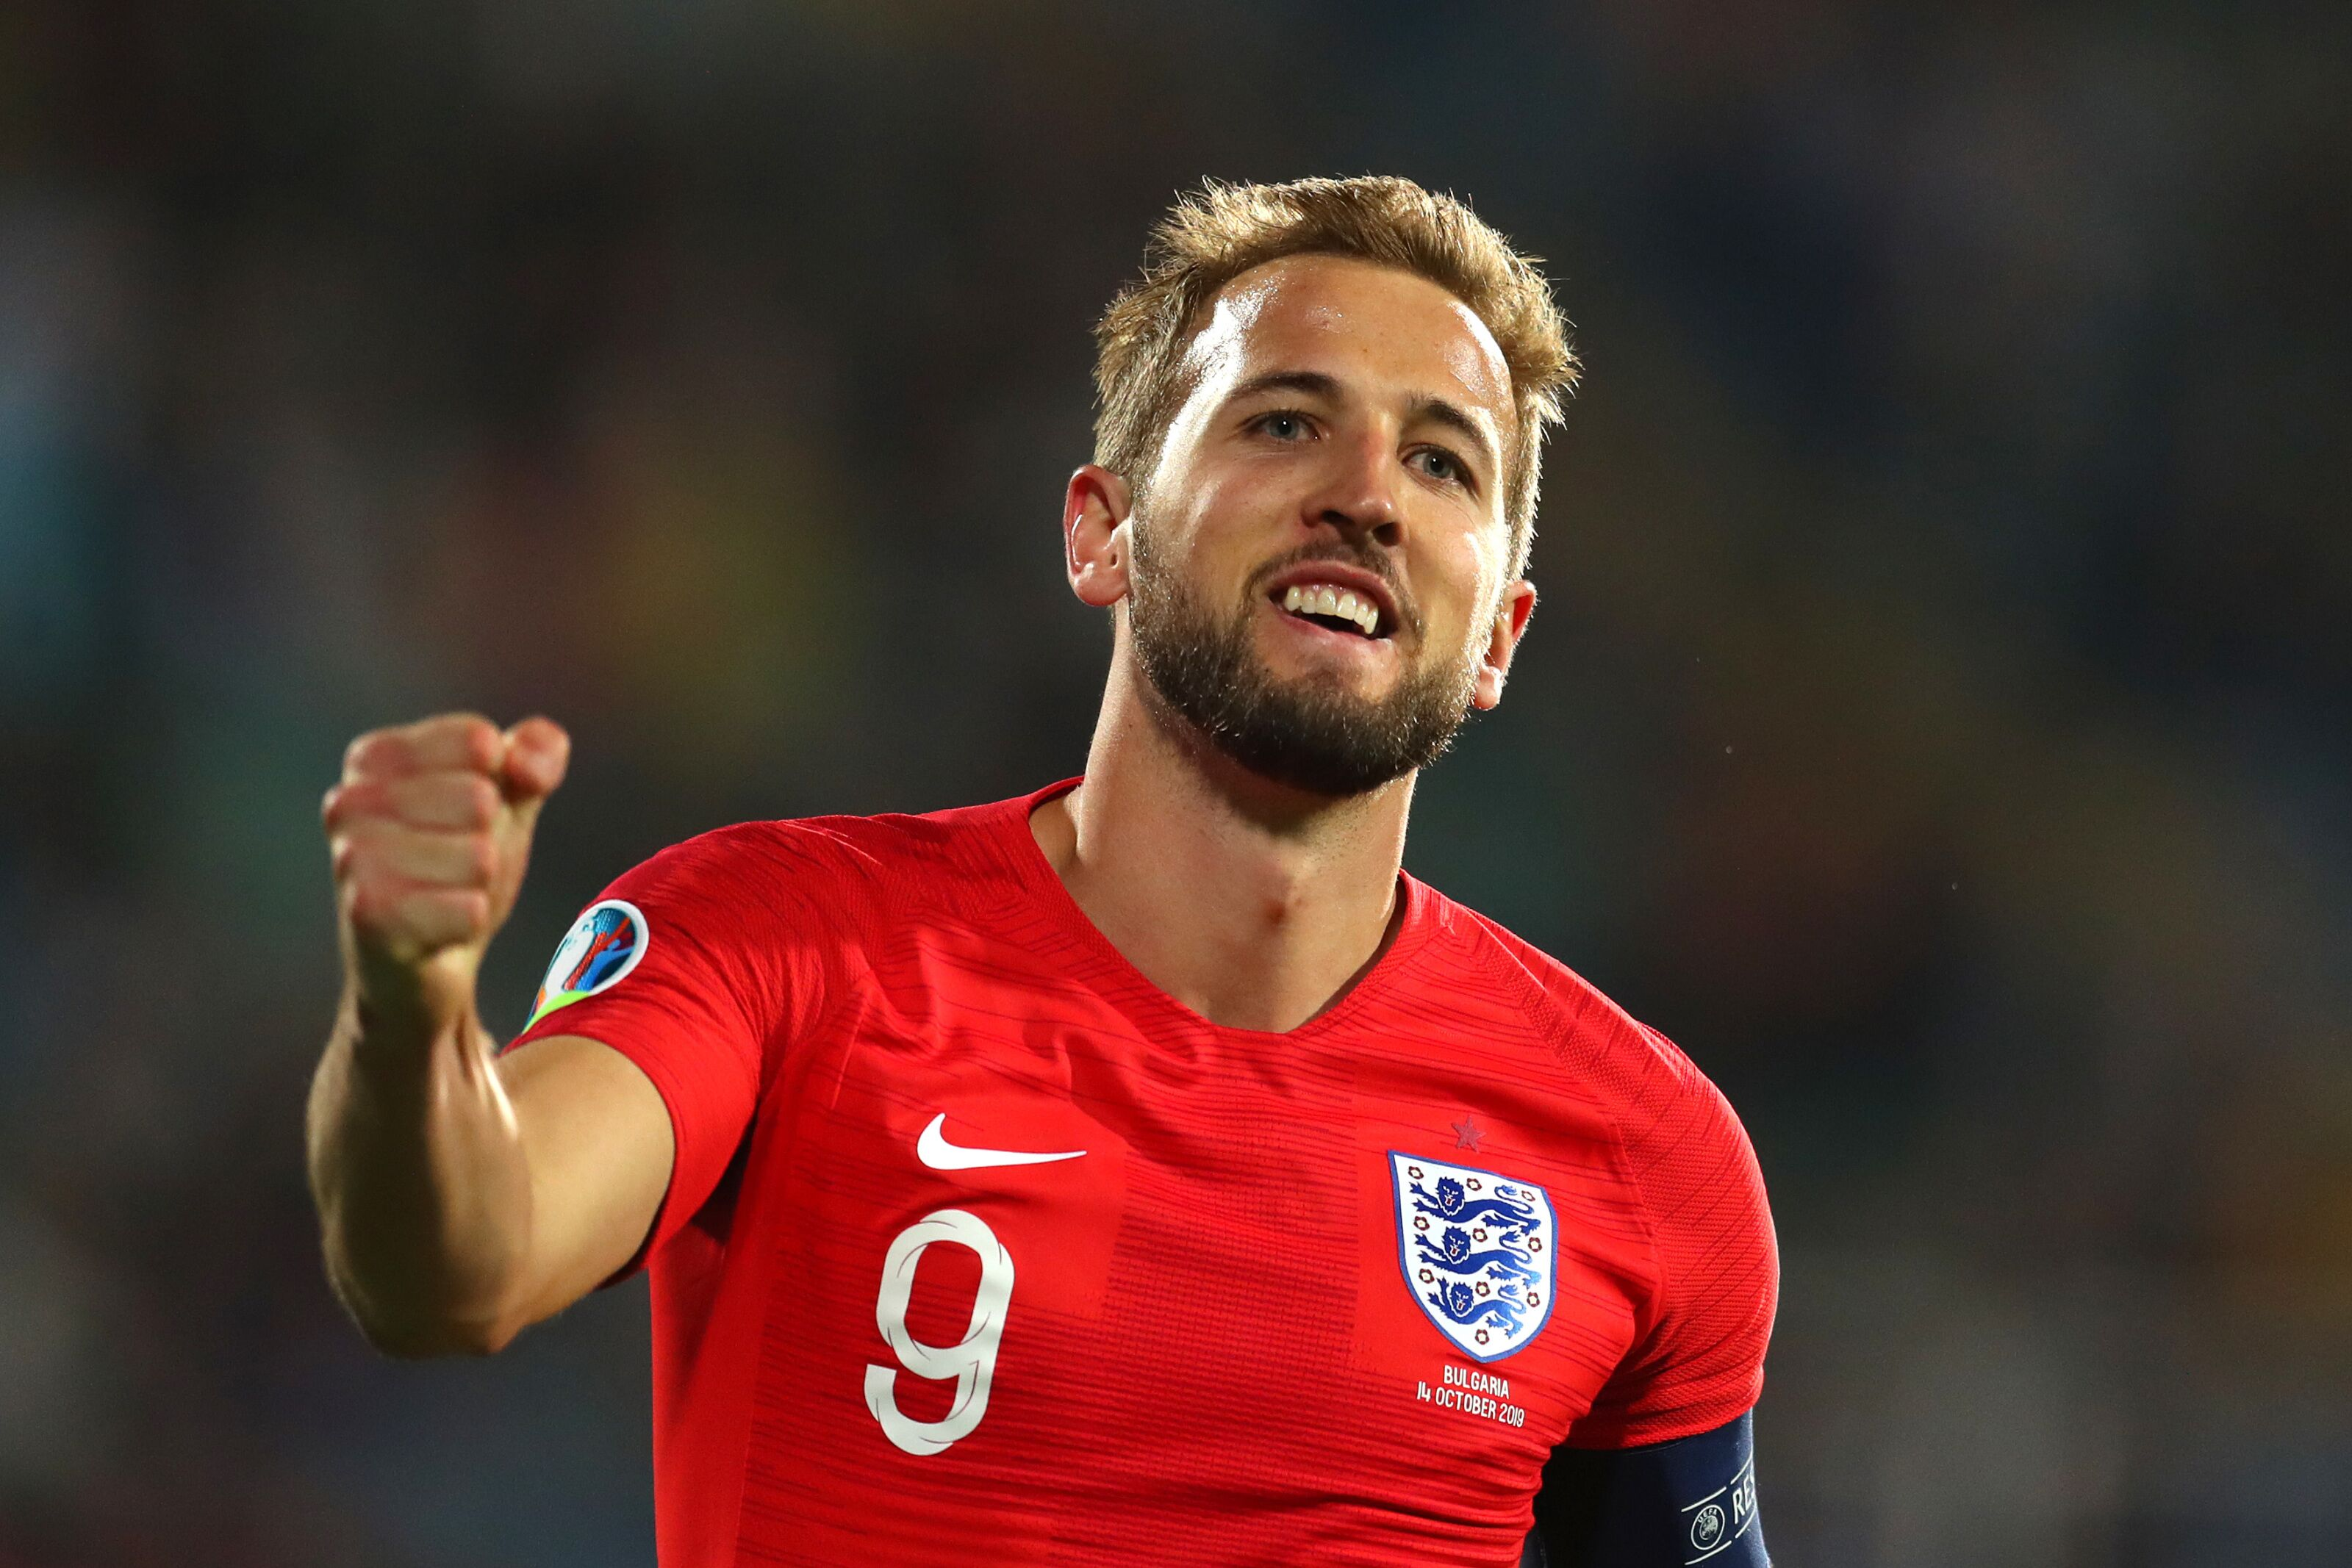 Tottenham may look at a position change for Harry Kane